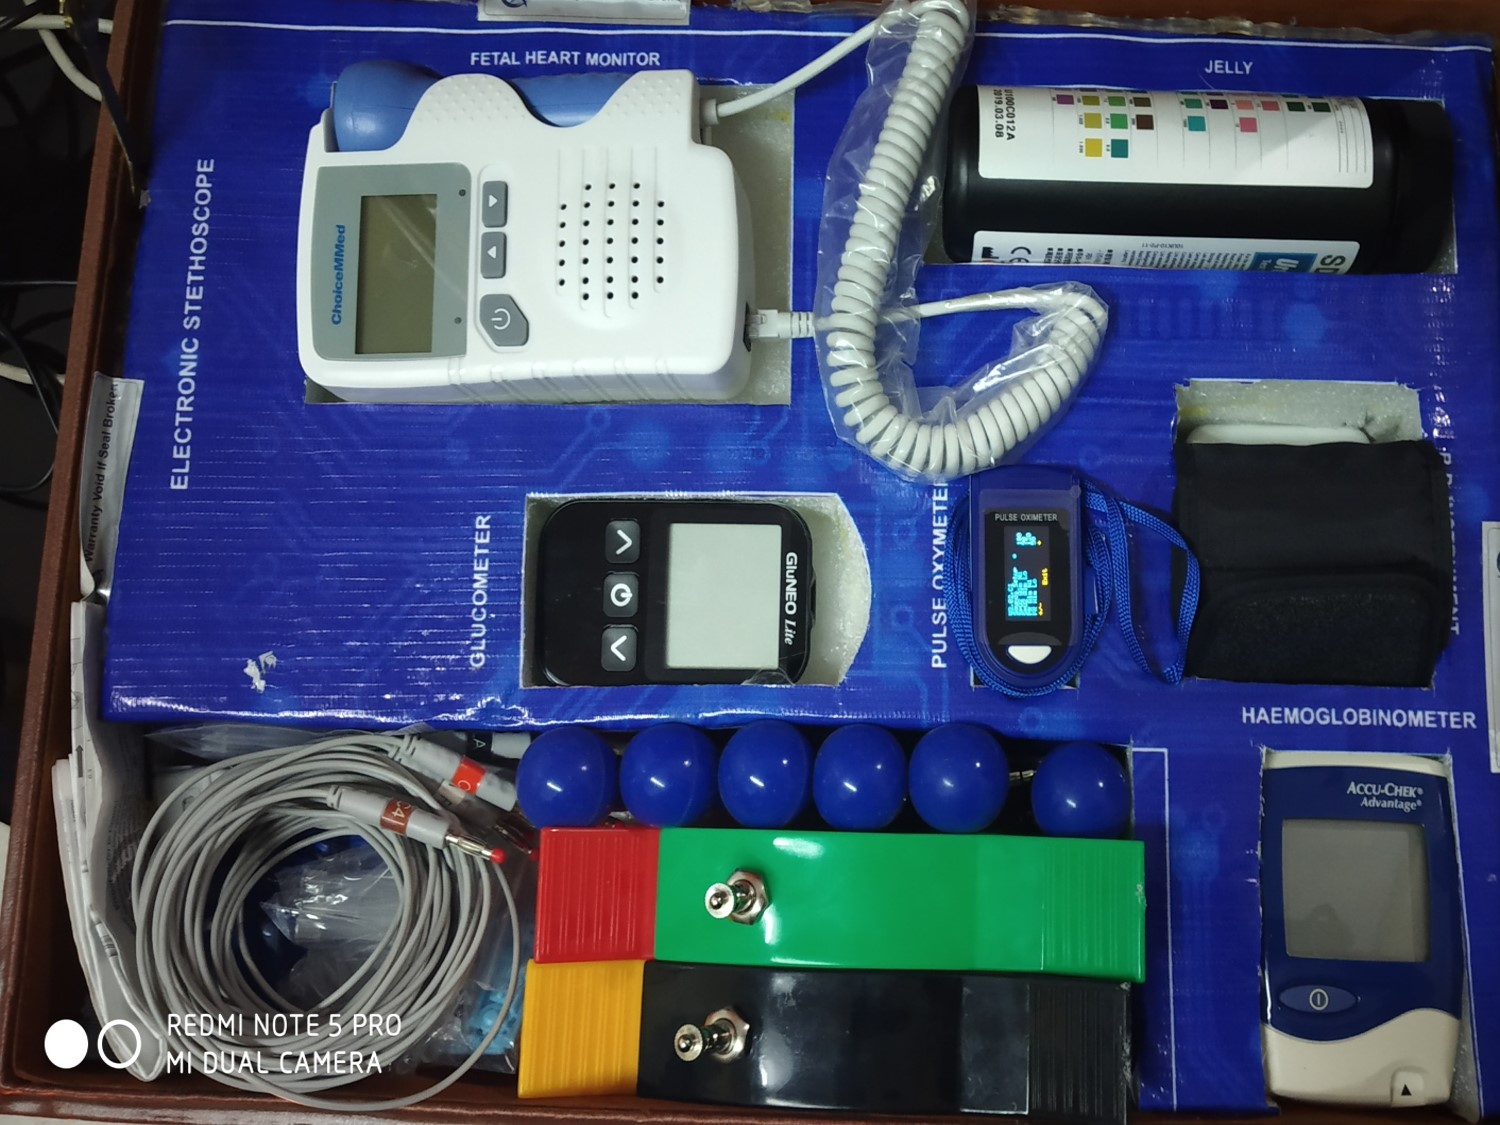 The kit given to every subcentre with 18 different kinds of equipment. (Source: District Admin/Tehri Garhwal)